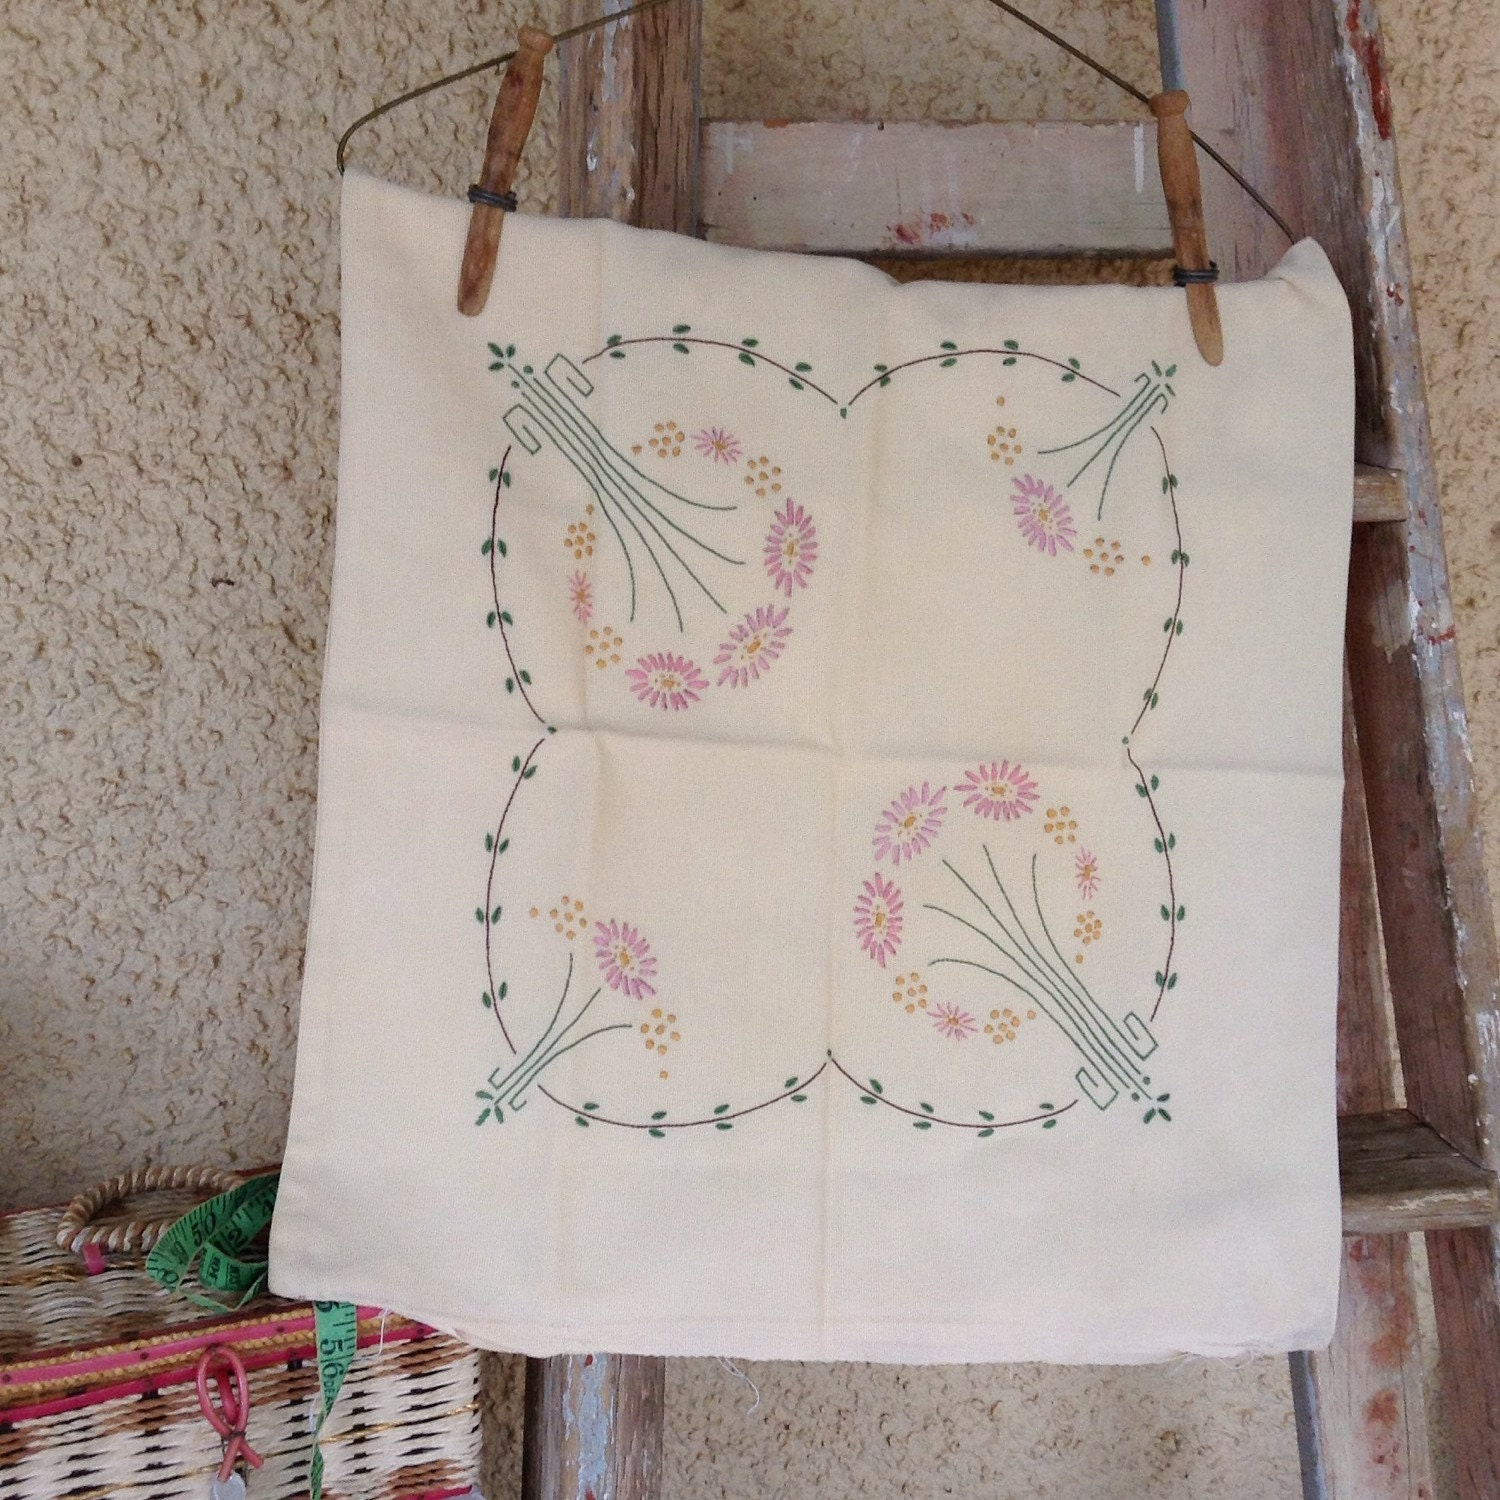 Vintage embroidery floral pattern cushion cover unfinished